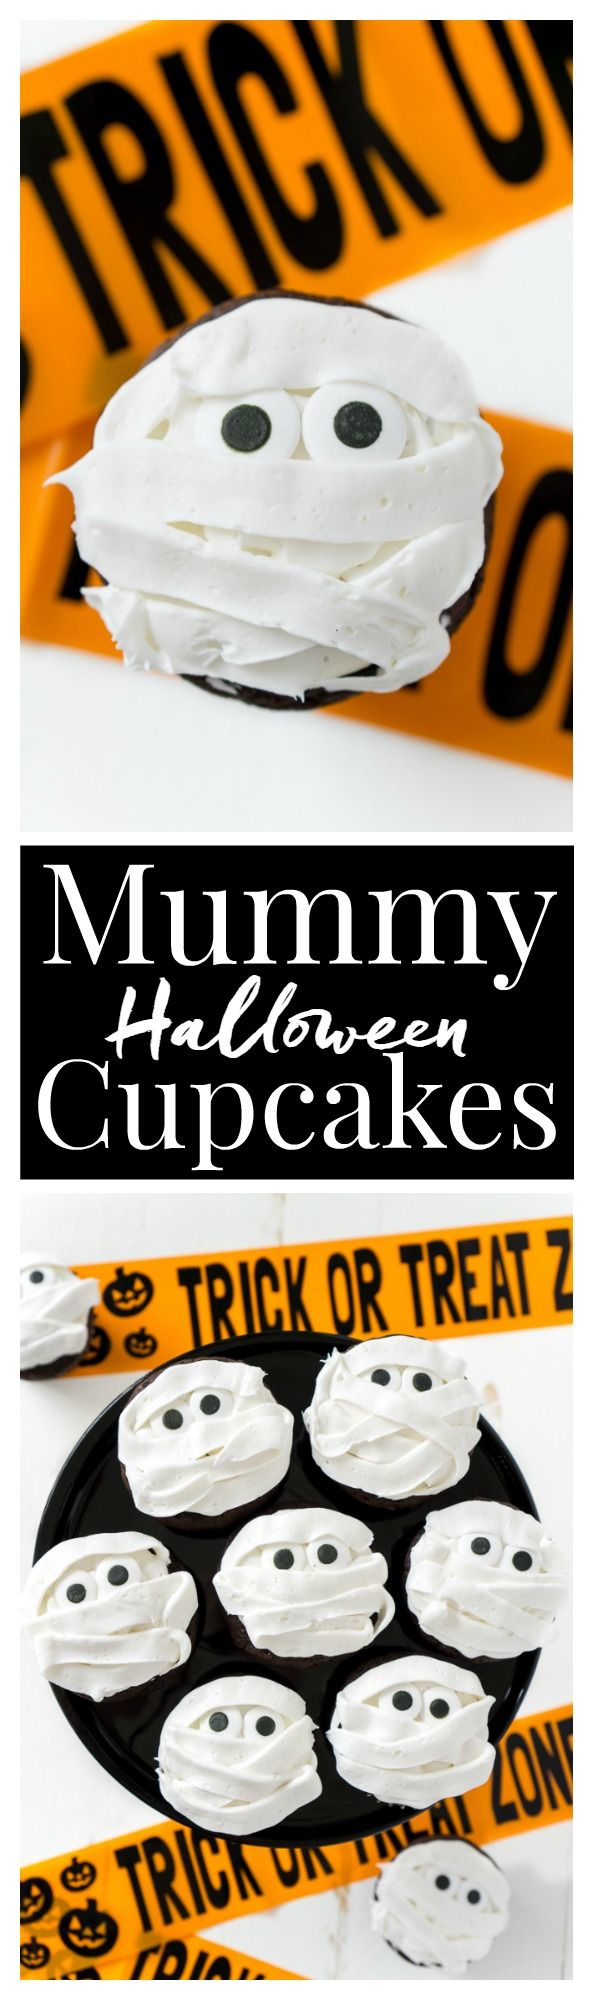 17 Best images about Holiday   Halloween on Pinterest   Halloween ...